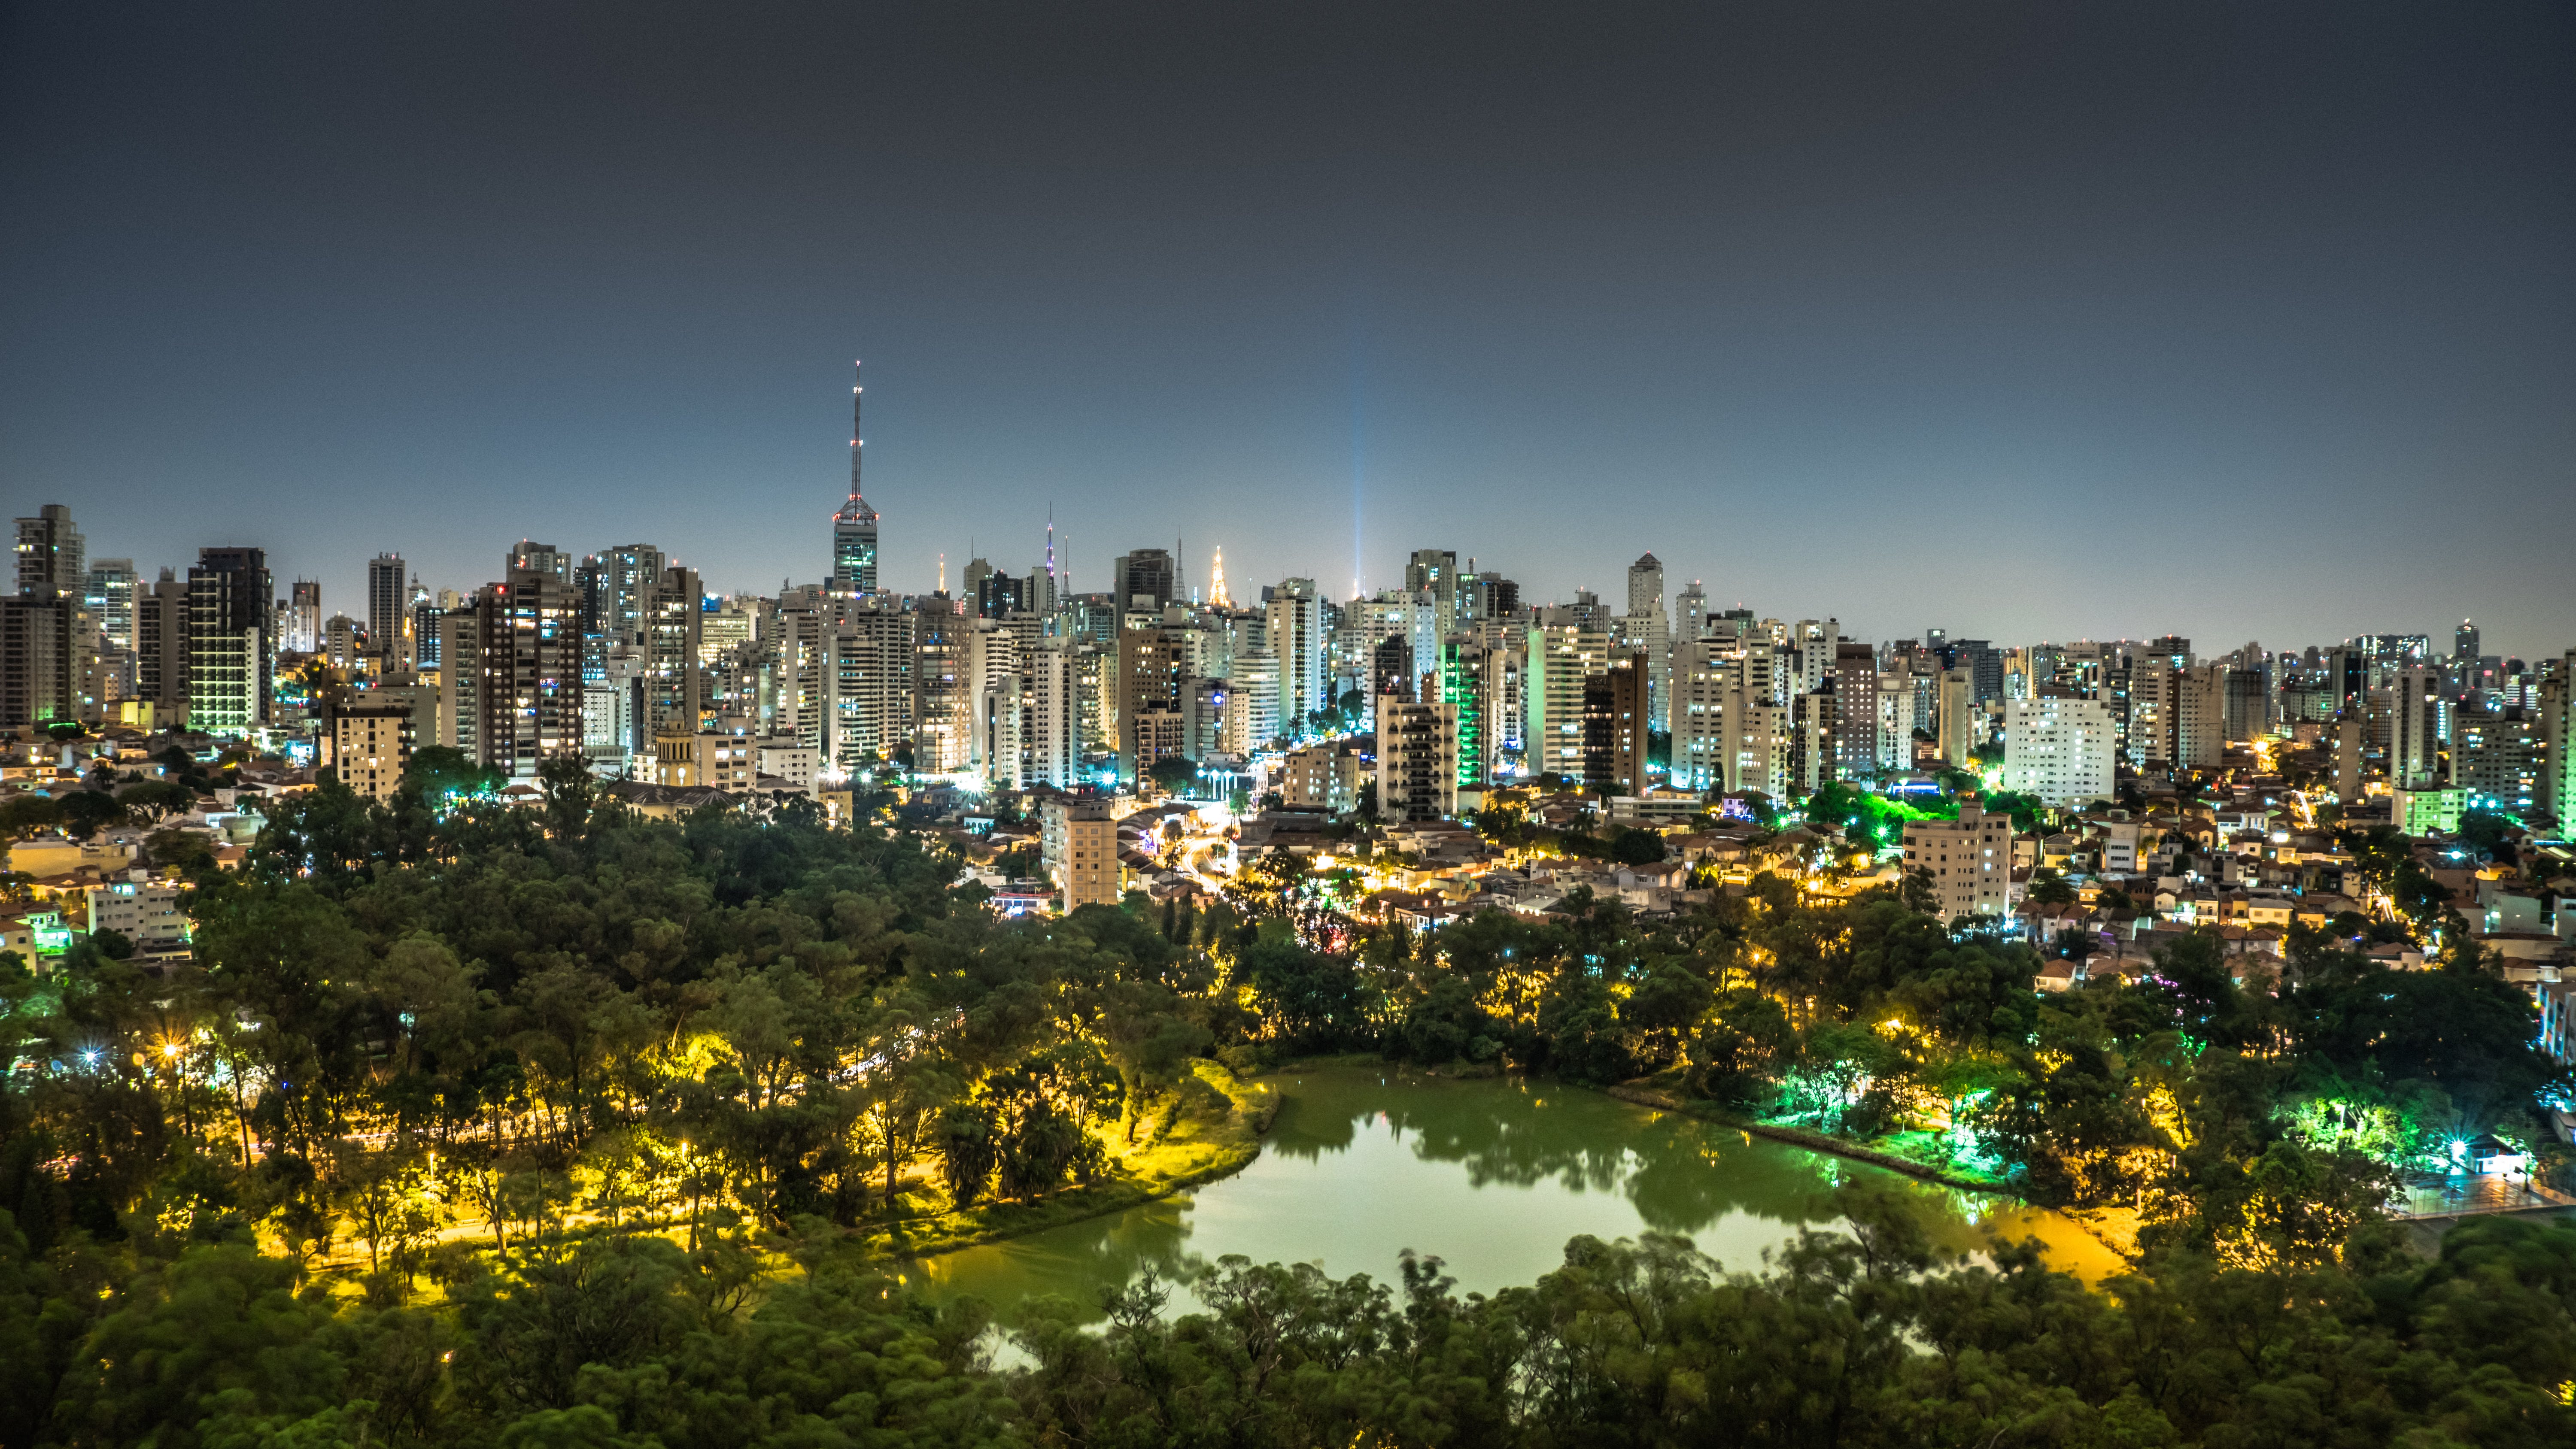 Aerial Photography of Central Park in New York